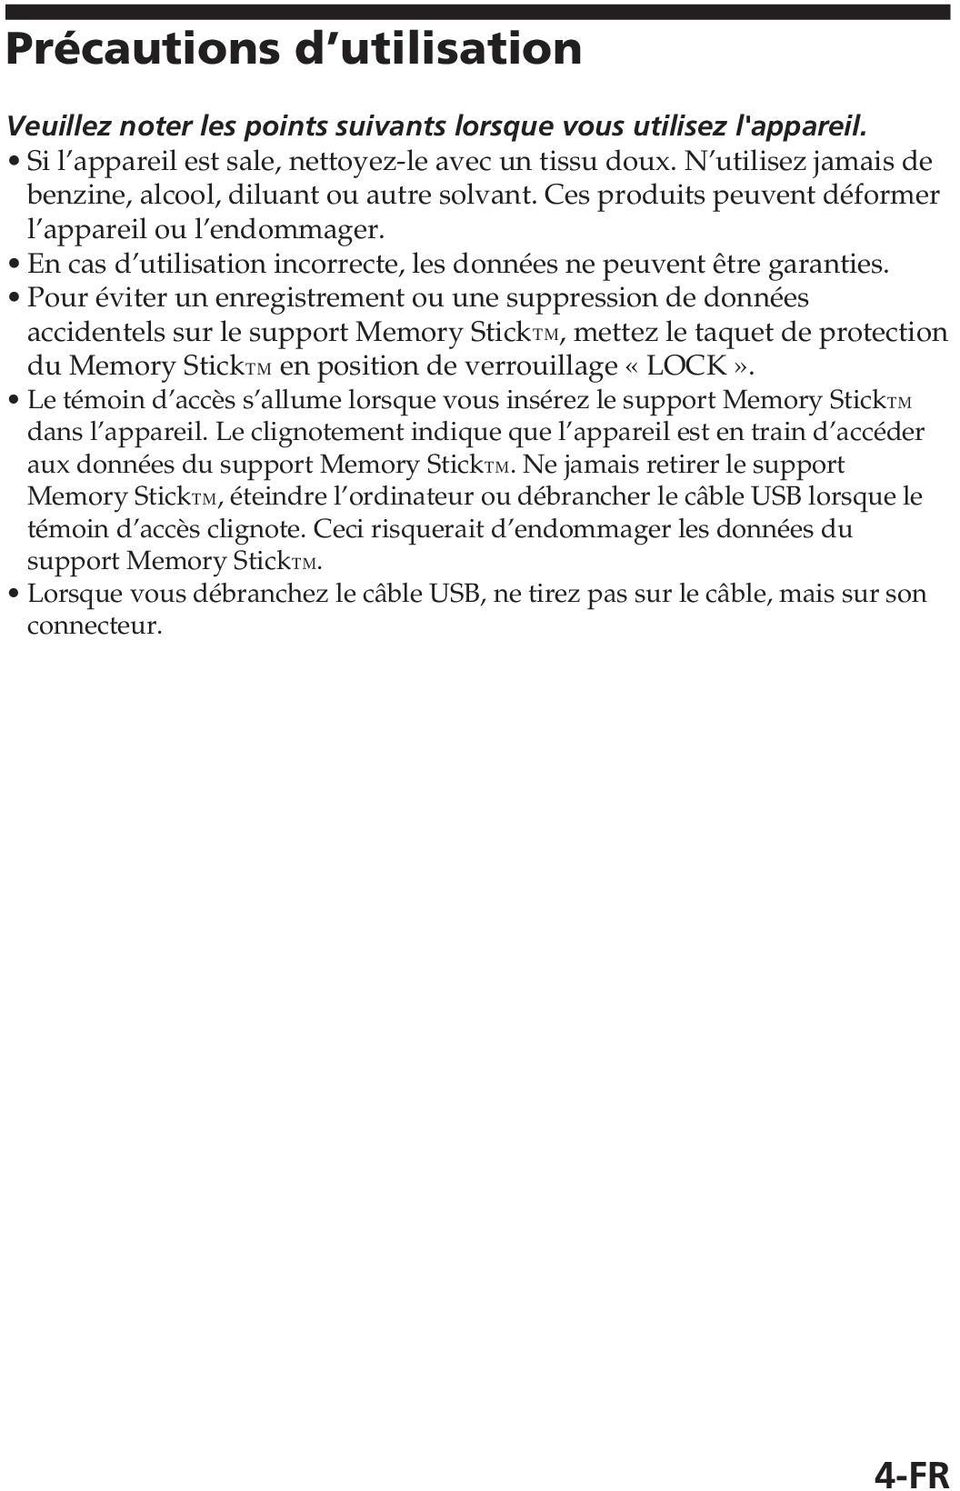 Pour éviter un enregistrement ou une suppression de données accidentels sur le support Memory Stick, mettez le taquet de protection du Memory Stick en position de verrouillage «LOCK».